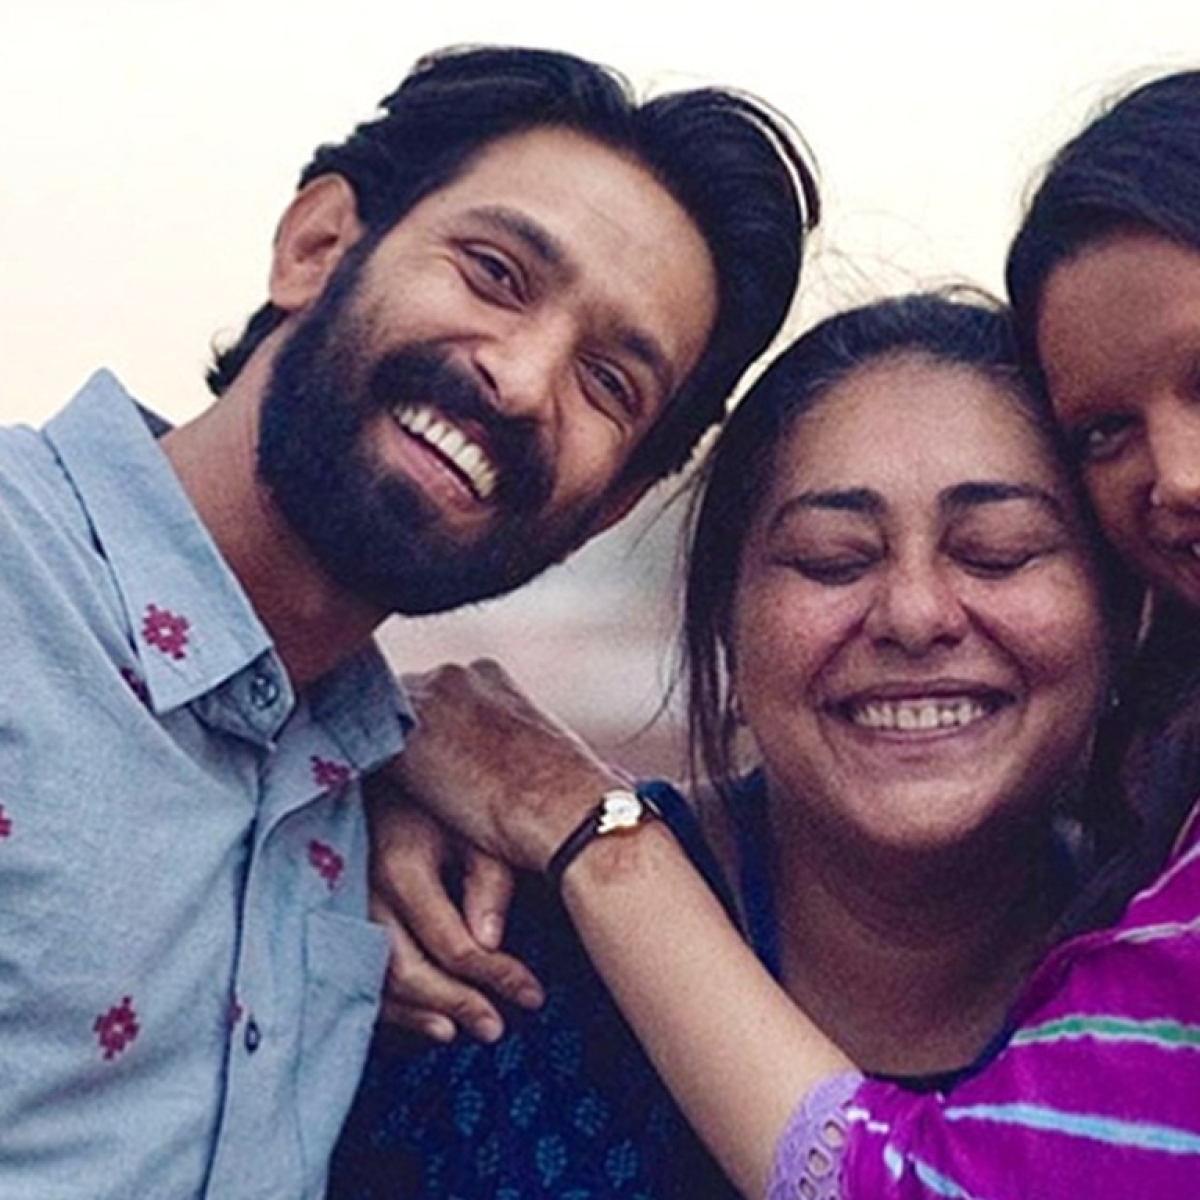 Vikrant Massey opens up on working with Deepika Padukone as a lead actor in 'Chhapaak'